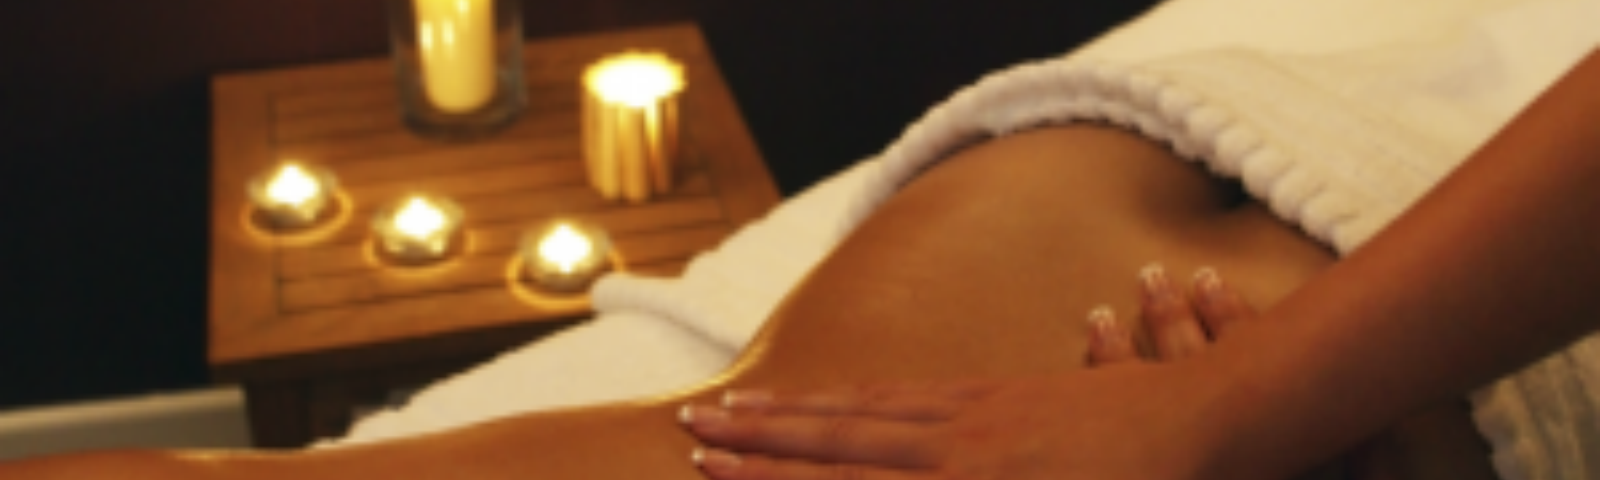 The Best Asian sensual massage deals in London